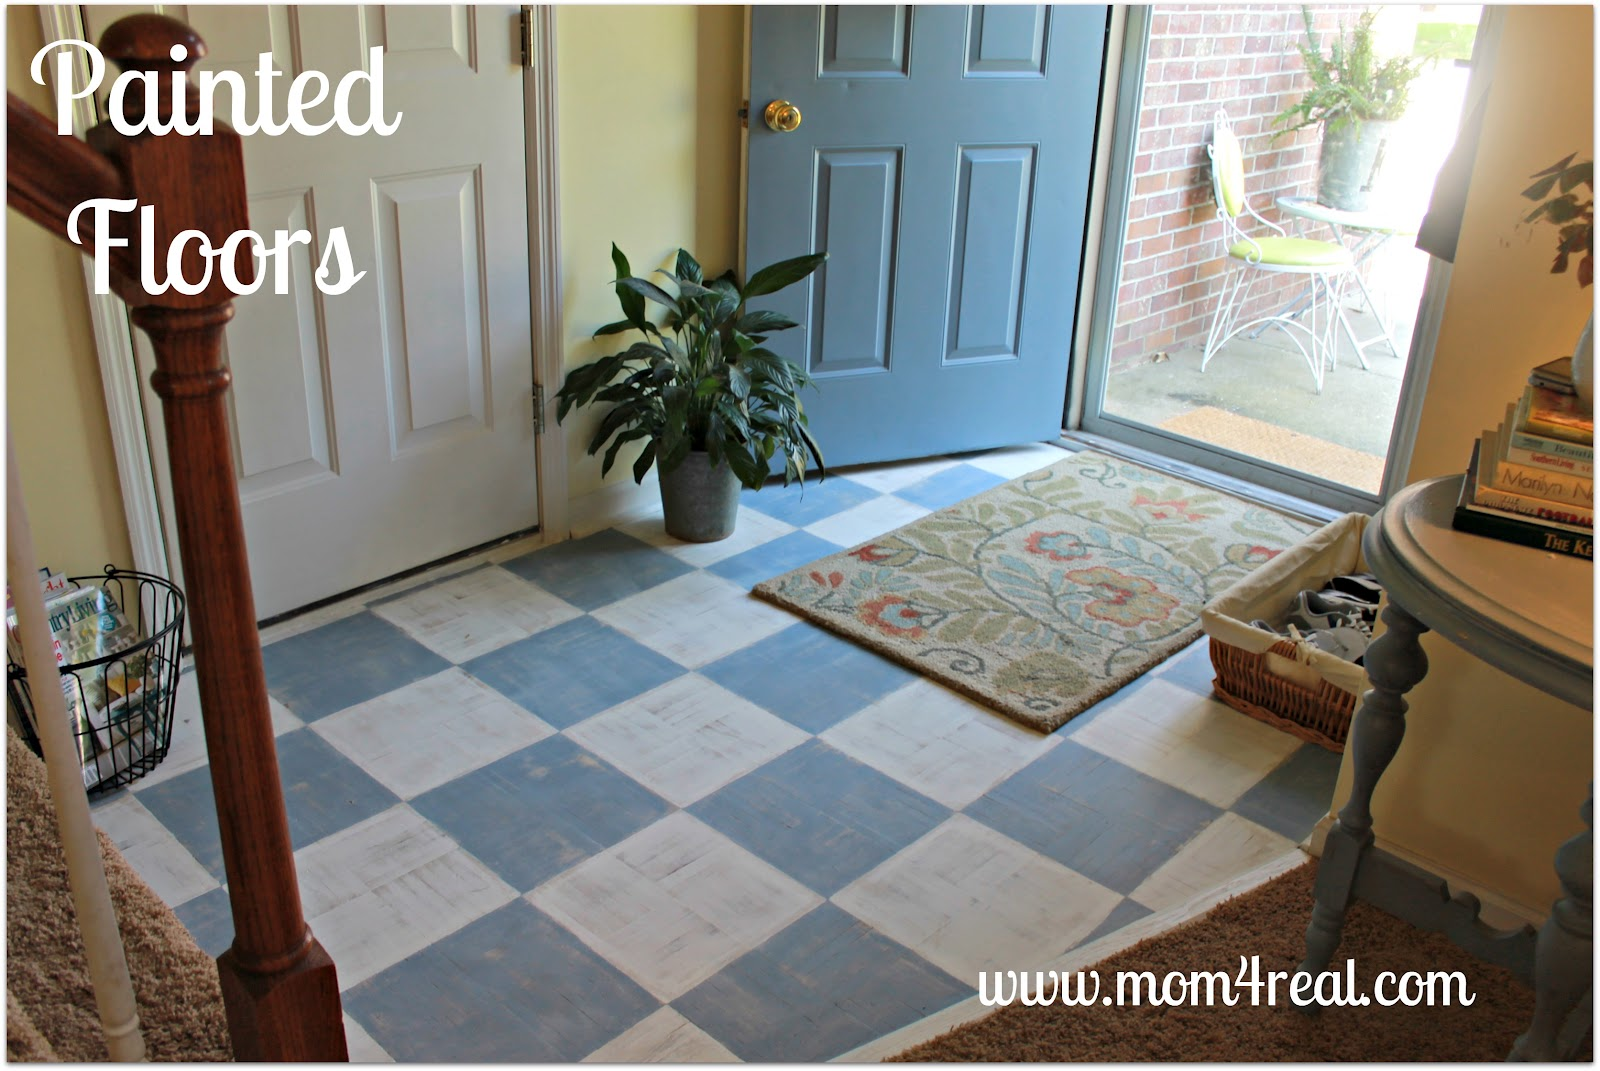 painted wood floors mom 4 real - Paint For Wooden Floor